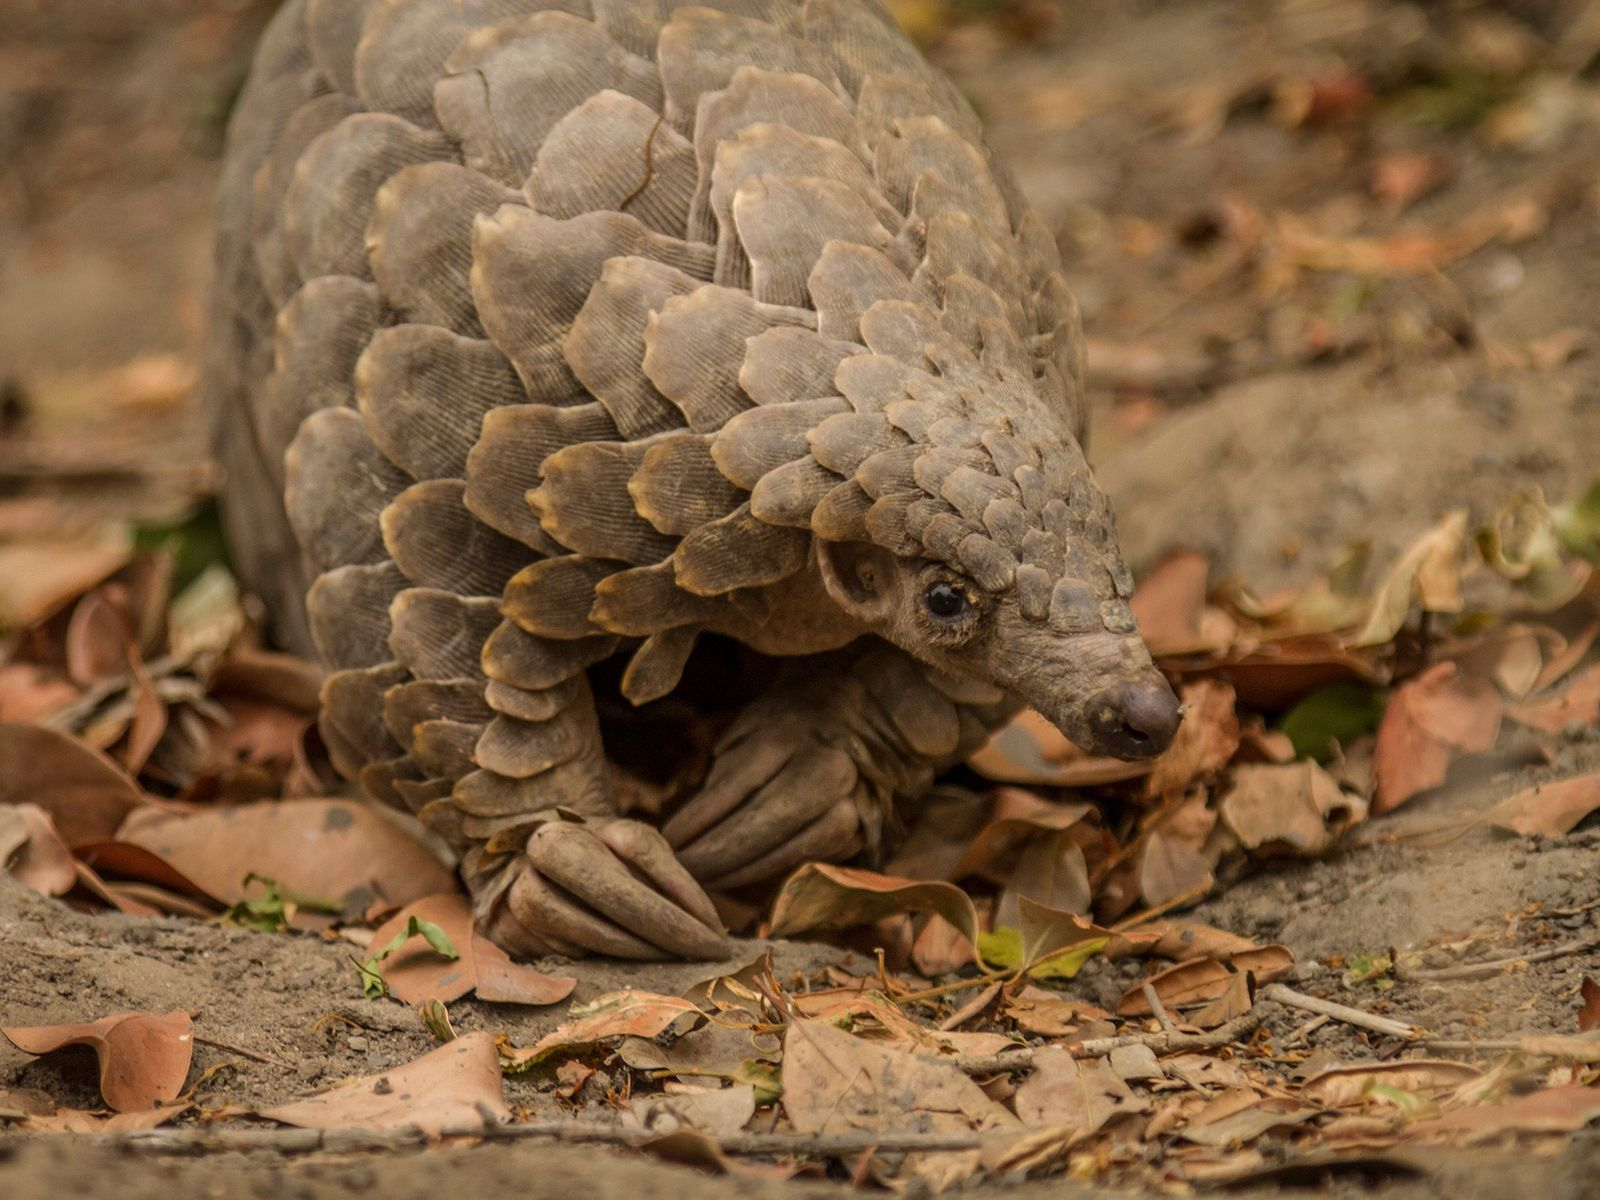 This Cape pangolin was rescued from poachers in Mozambique and released back into the wild. Conservationists ...